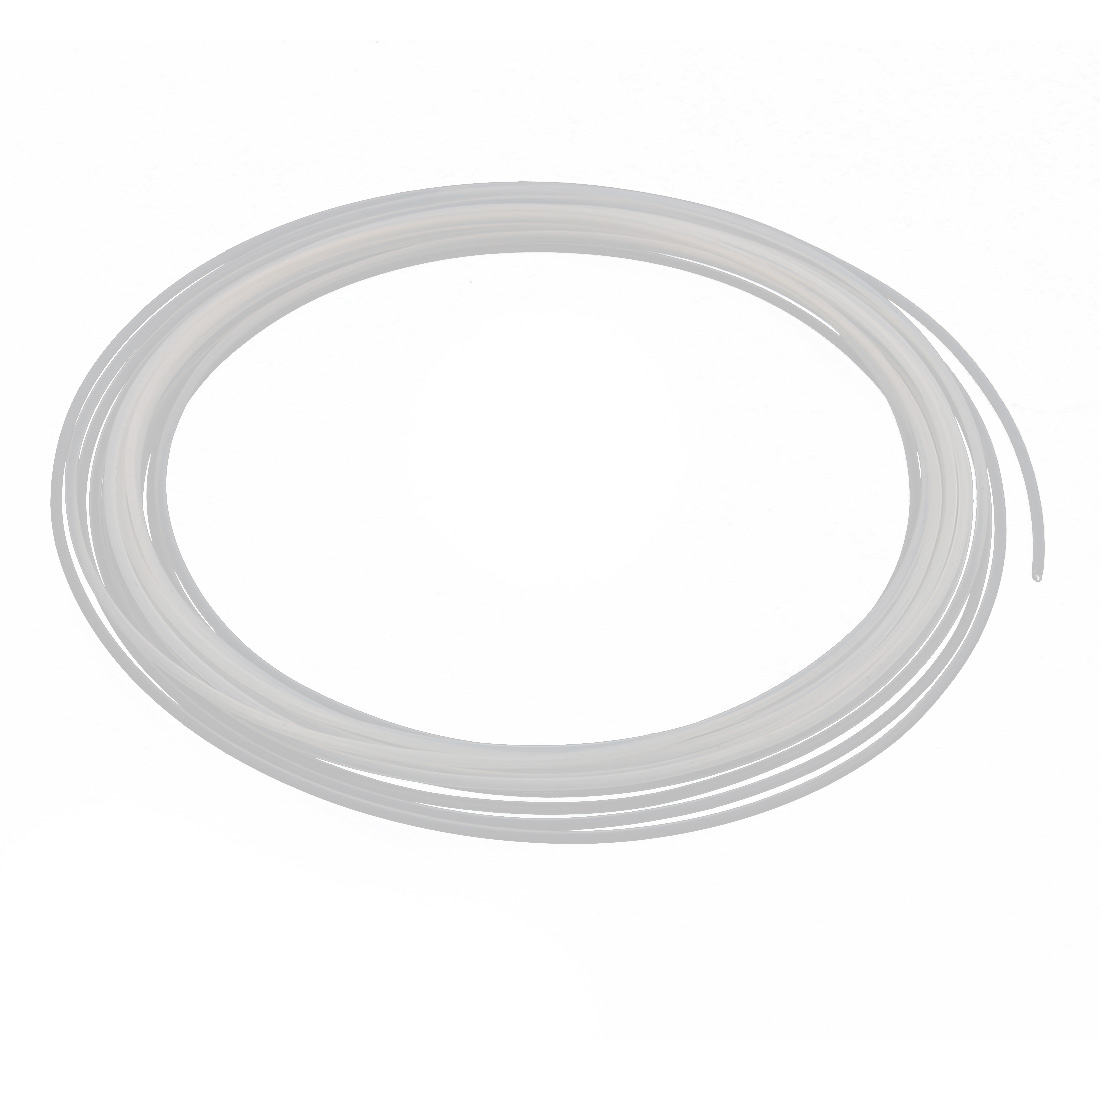 1.19mmx1.49mm PTFE Resistant High Temperature Transparent Tubing 5Meters 16.4Ft